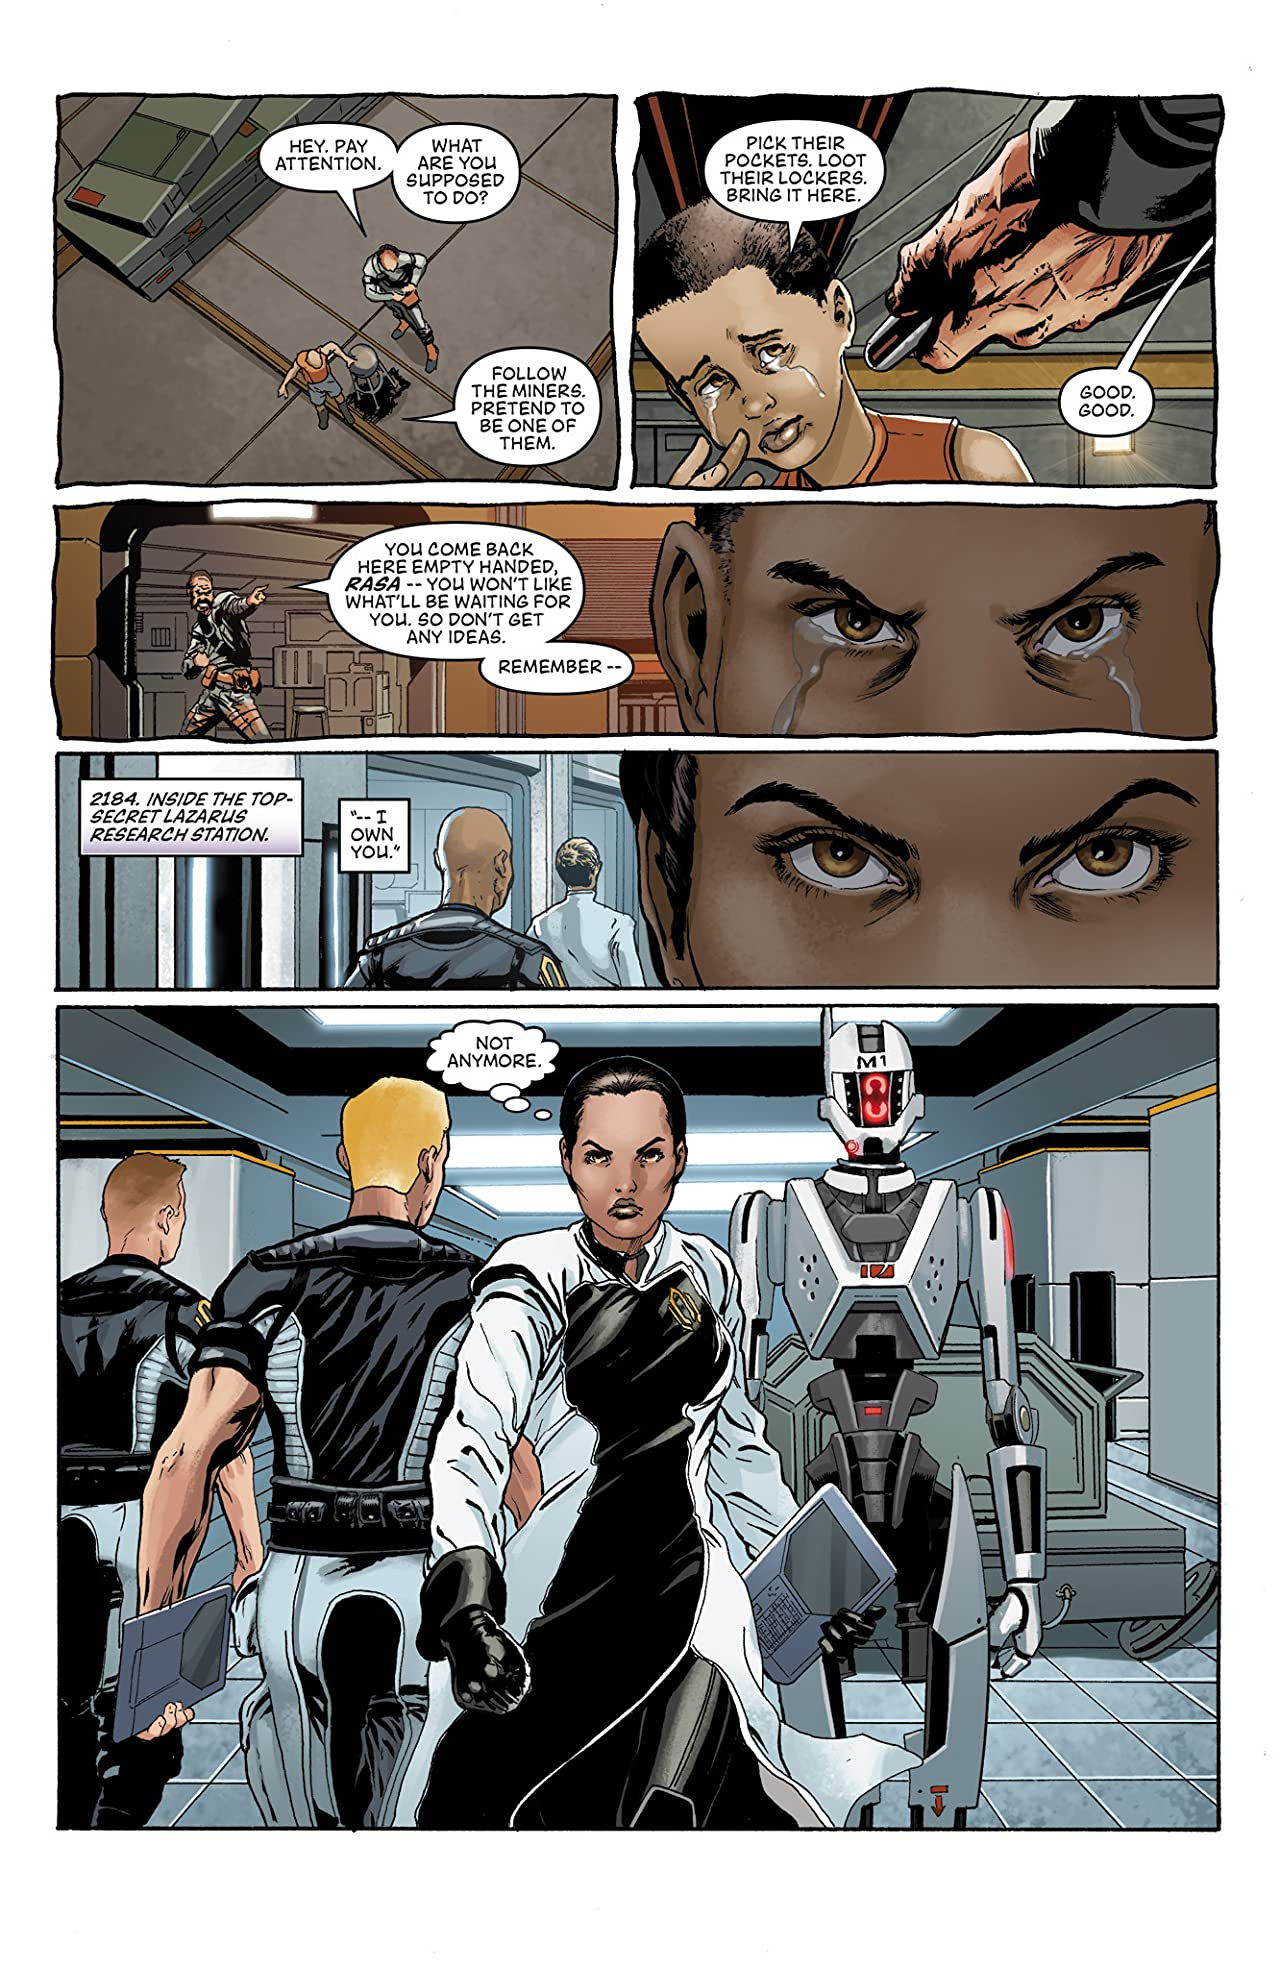 Mass Effect: Foundation #13